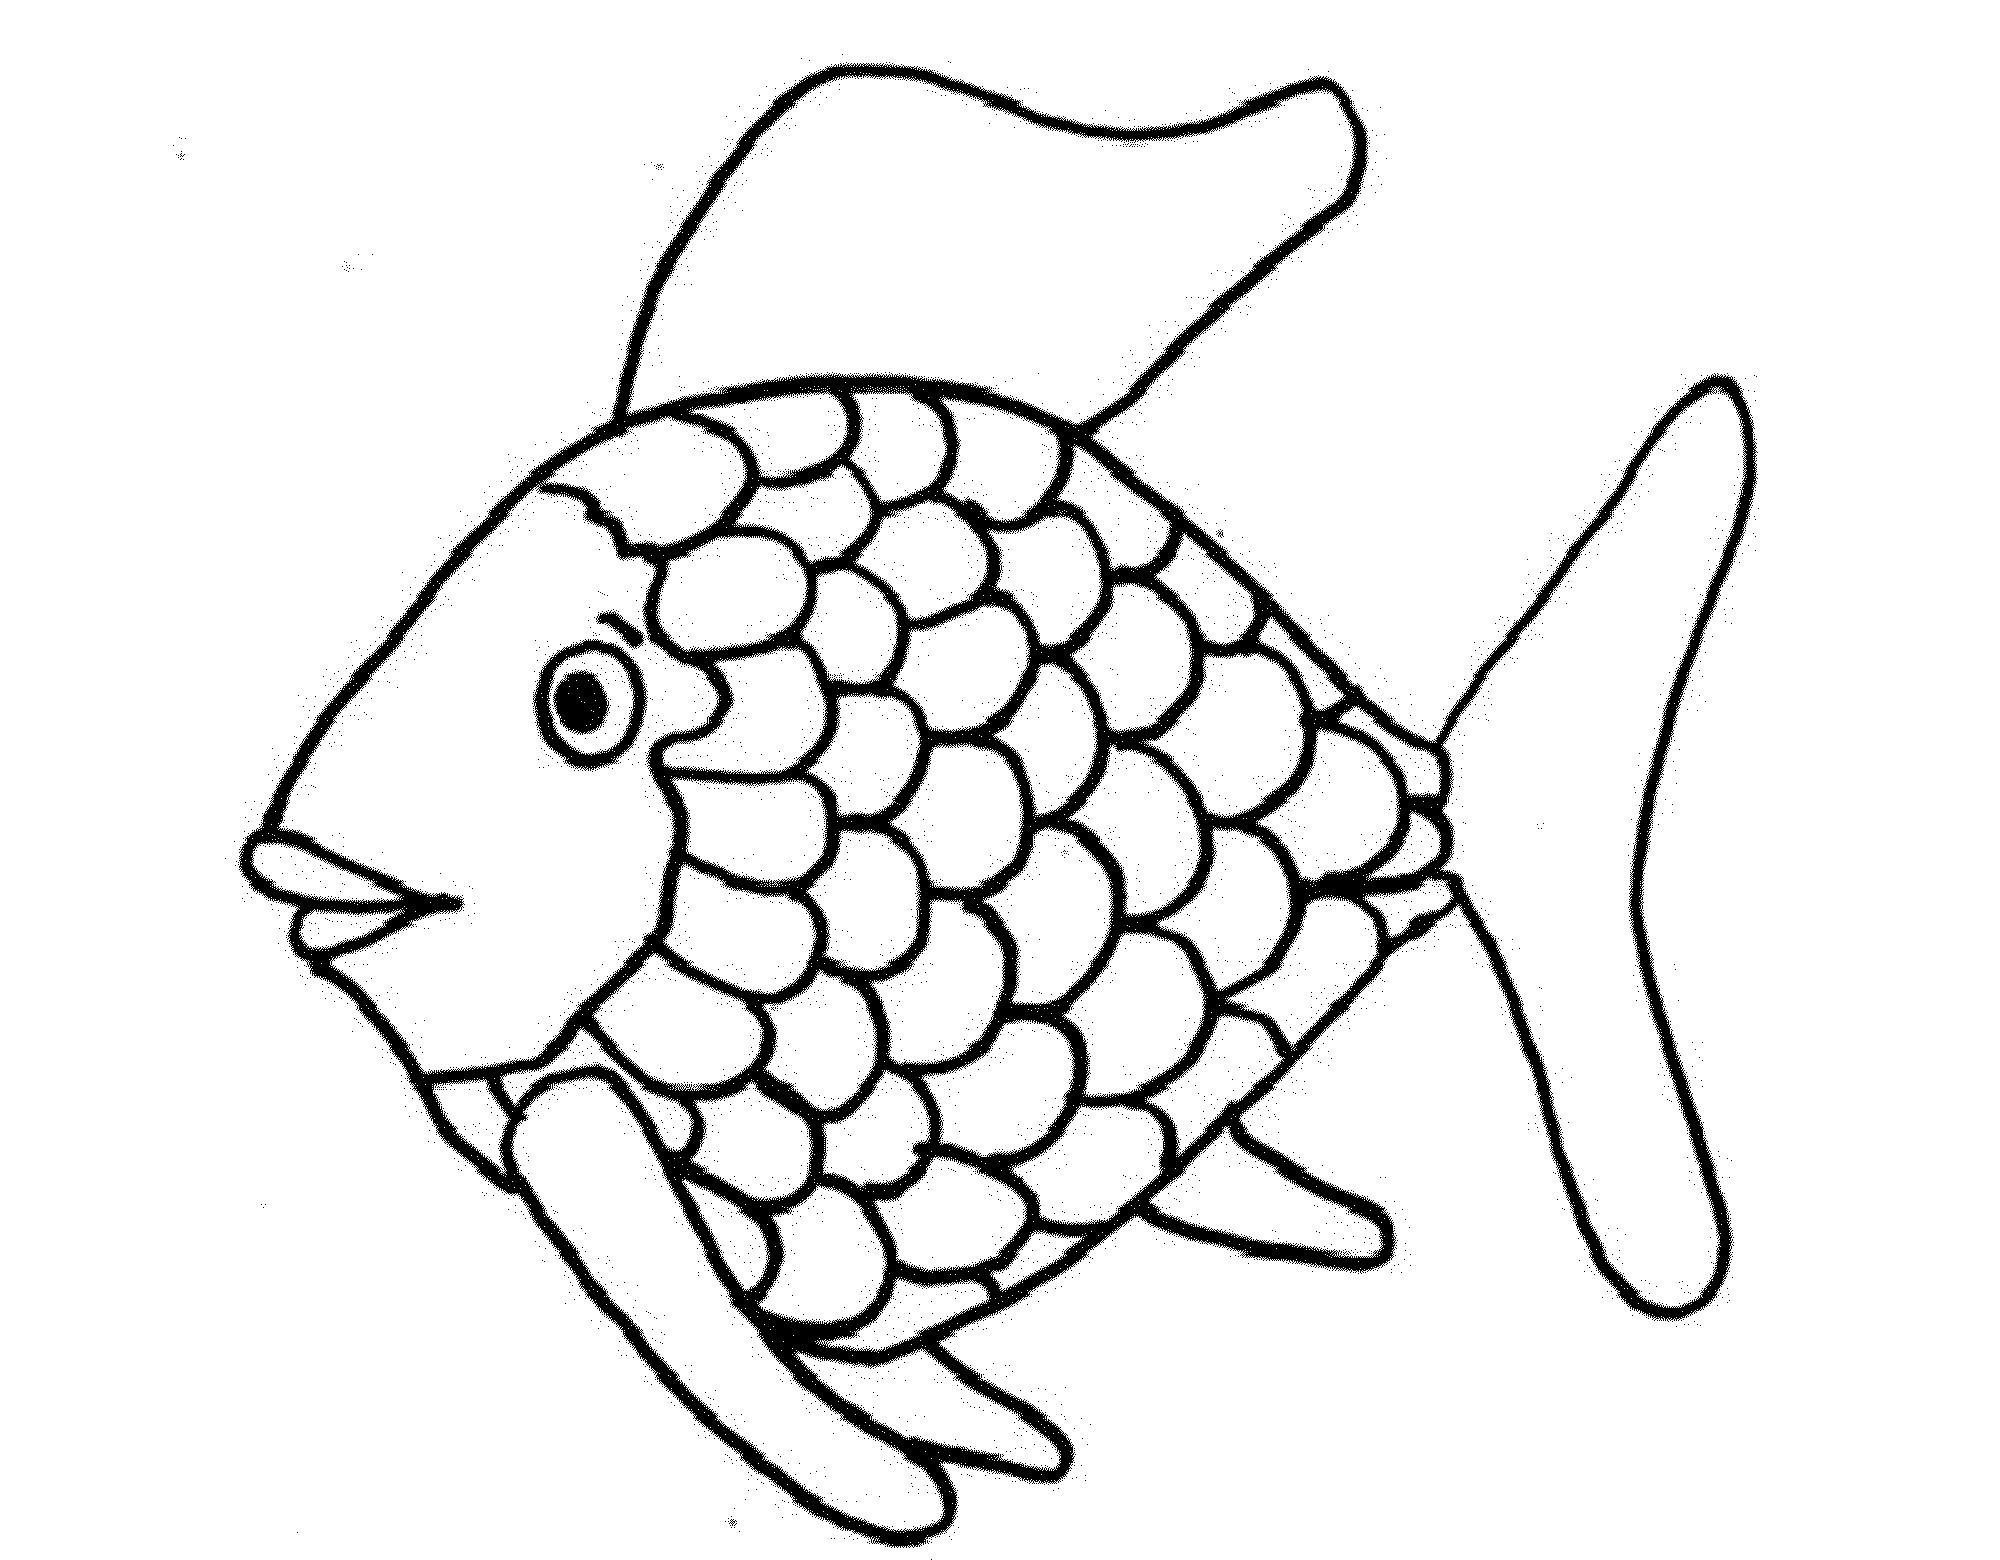 fish coloring pages pdf Download-The Rainbow Fish Coloring Page 10-q